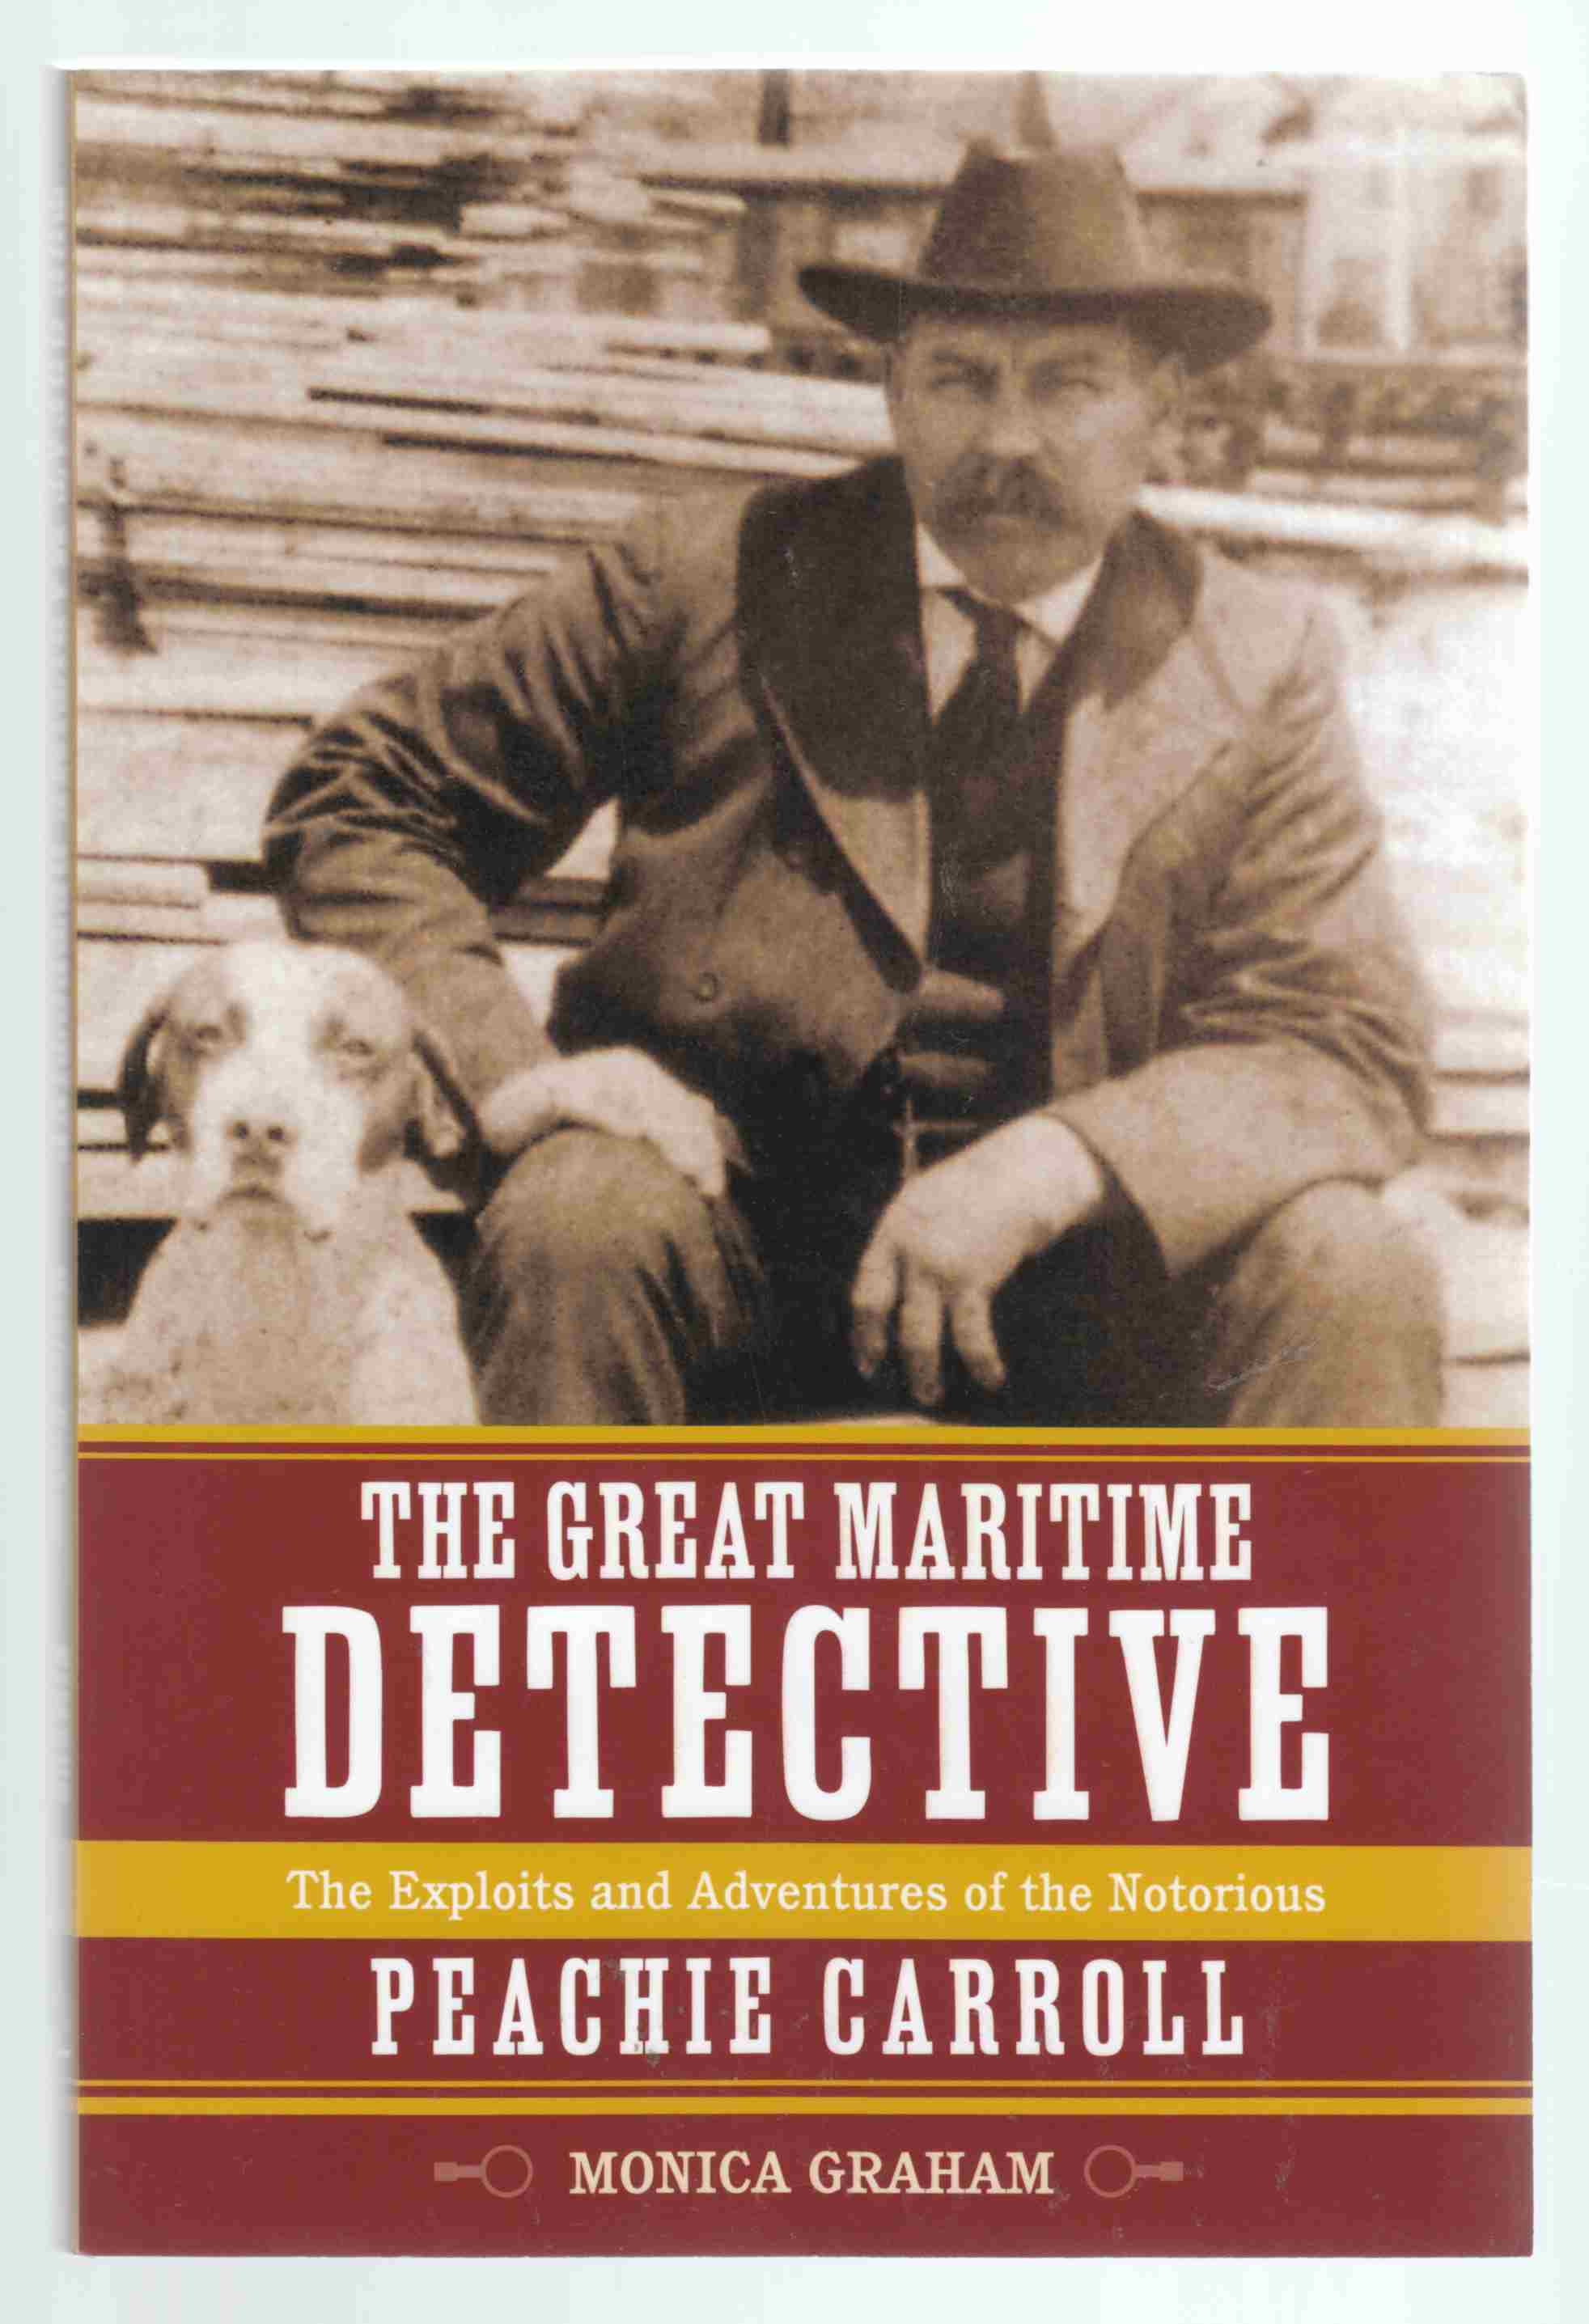 Image for The Great Maritime Detective The Exploits and Adventures of the Notorious Peachie Carroll